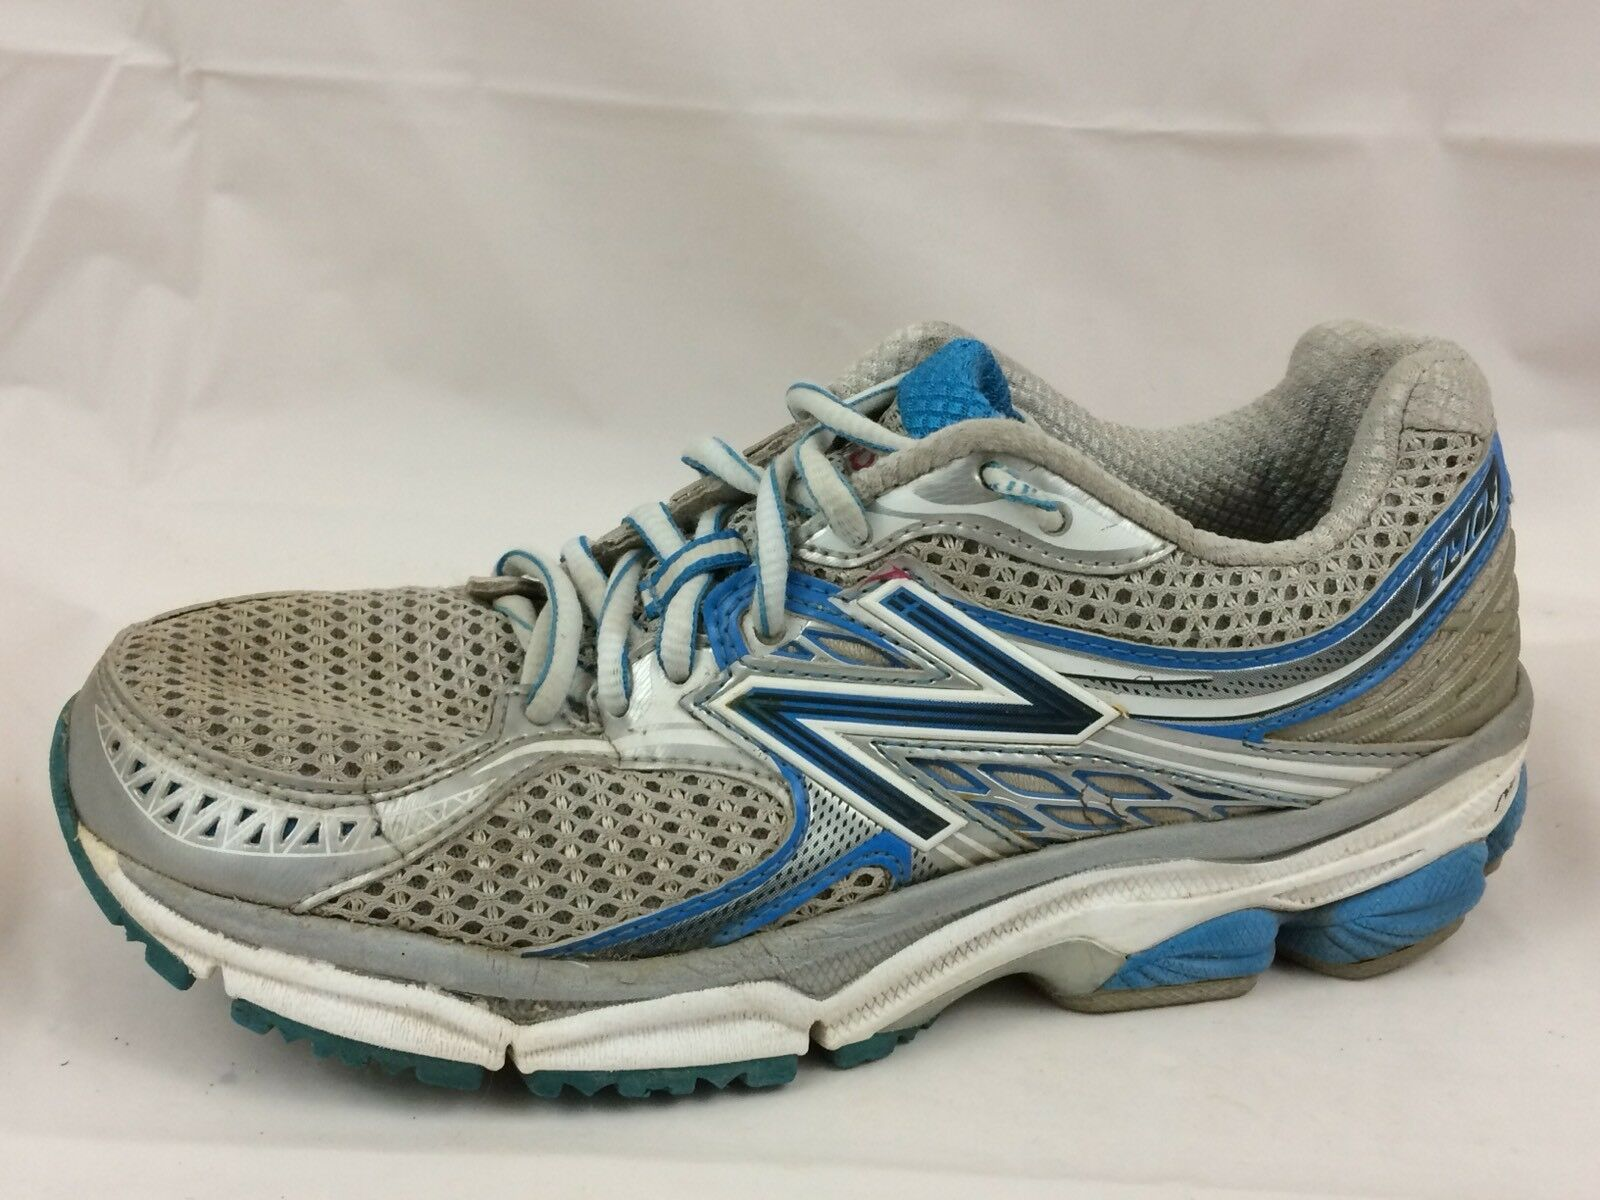 New Balance 1340v1 Womens 7 M Silver bluee Running shoes Training Sneaker Trainer